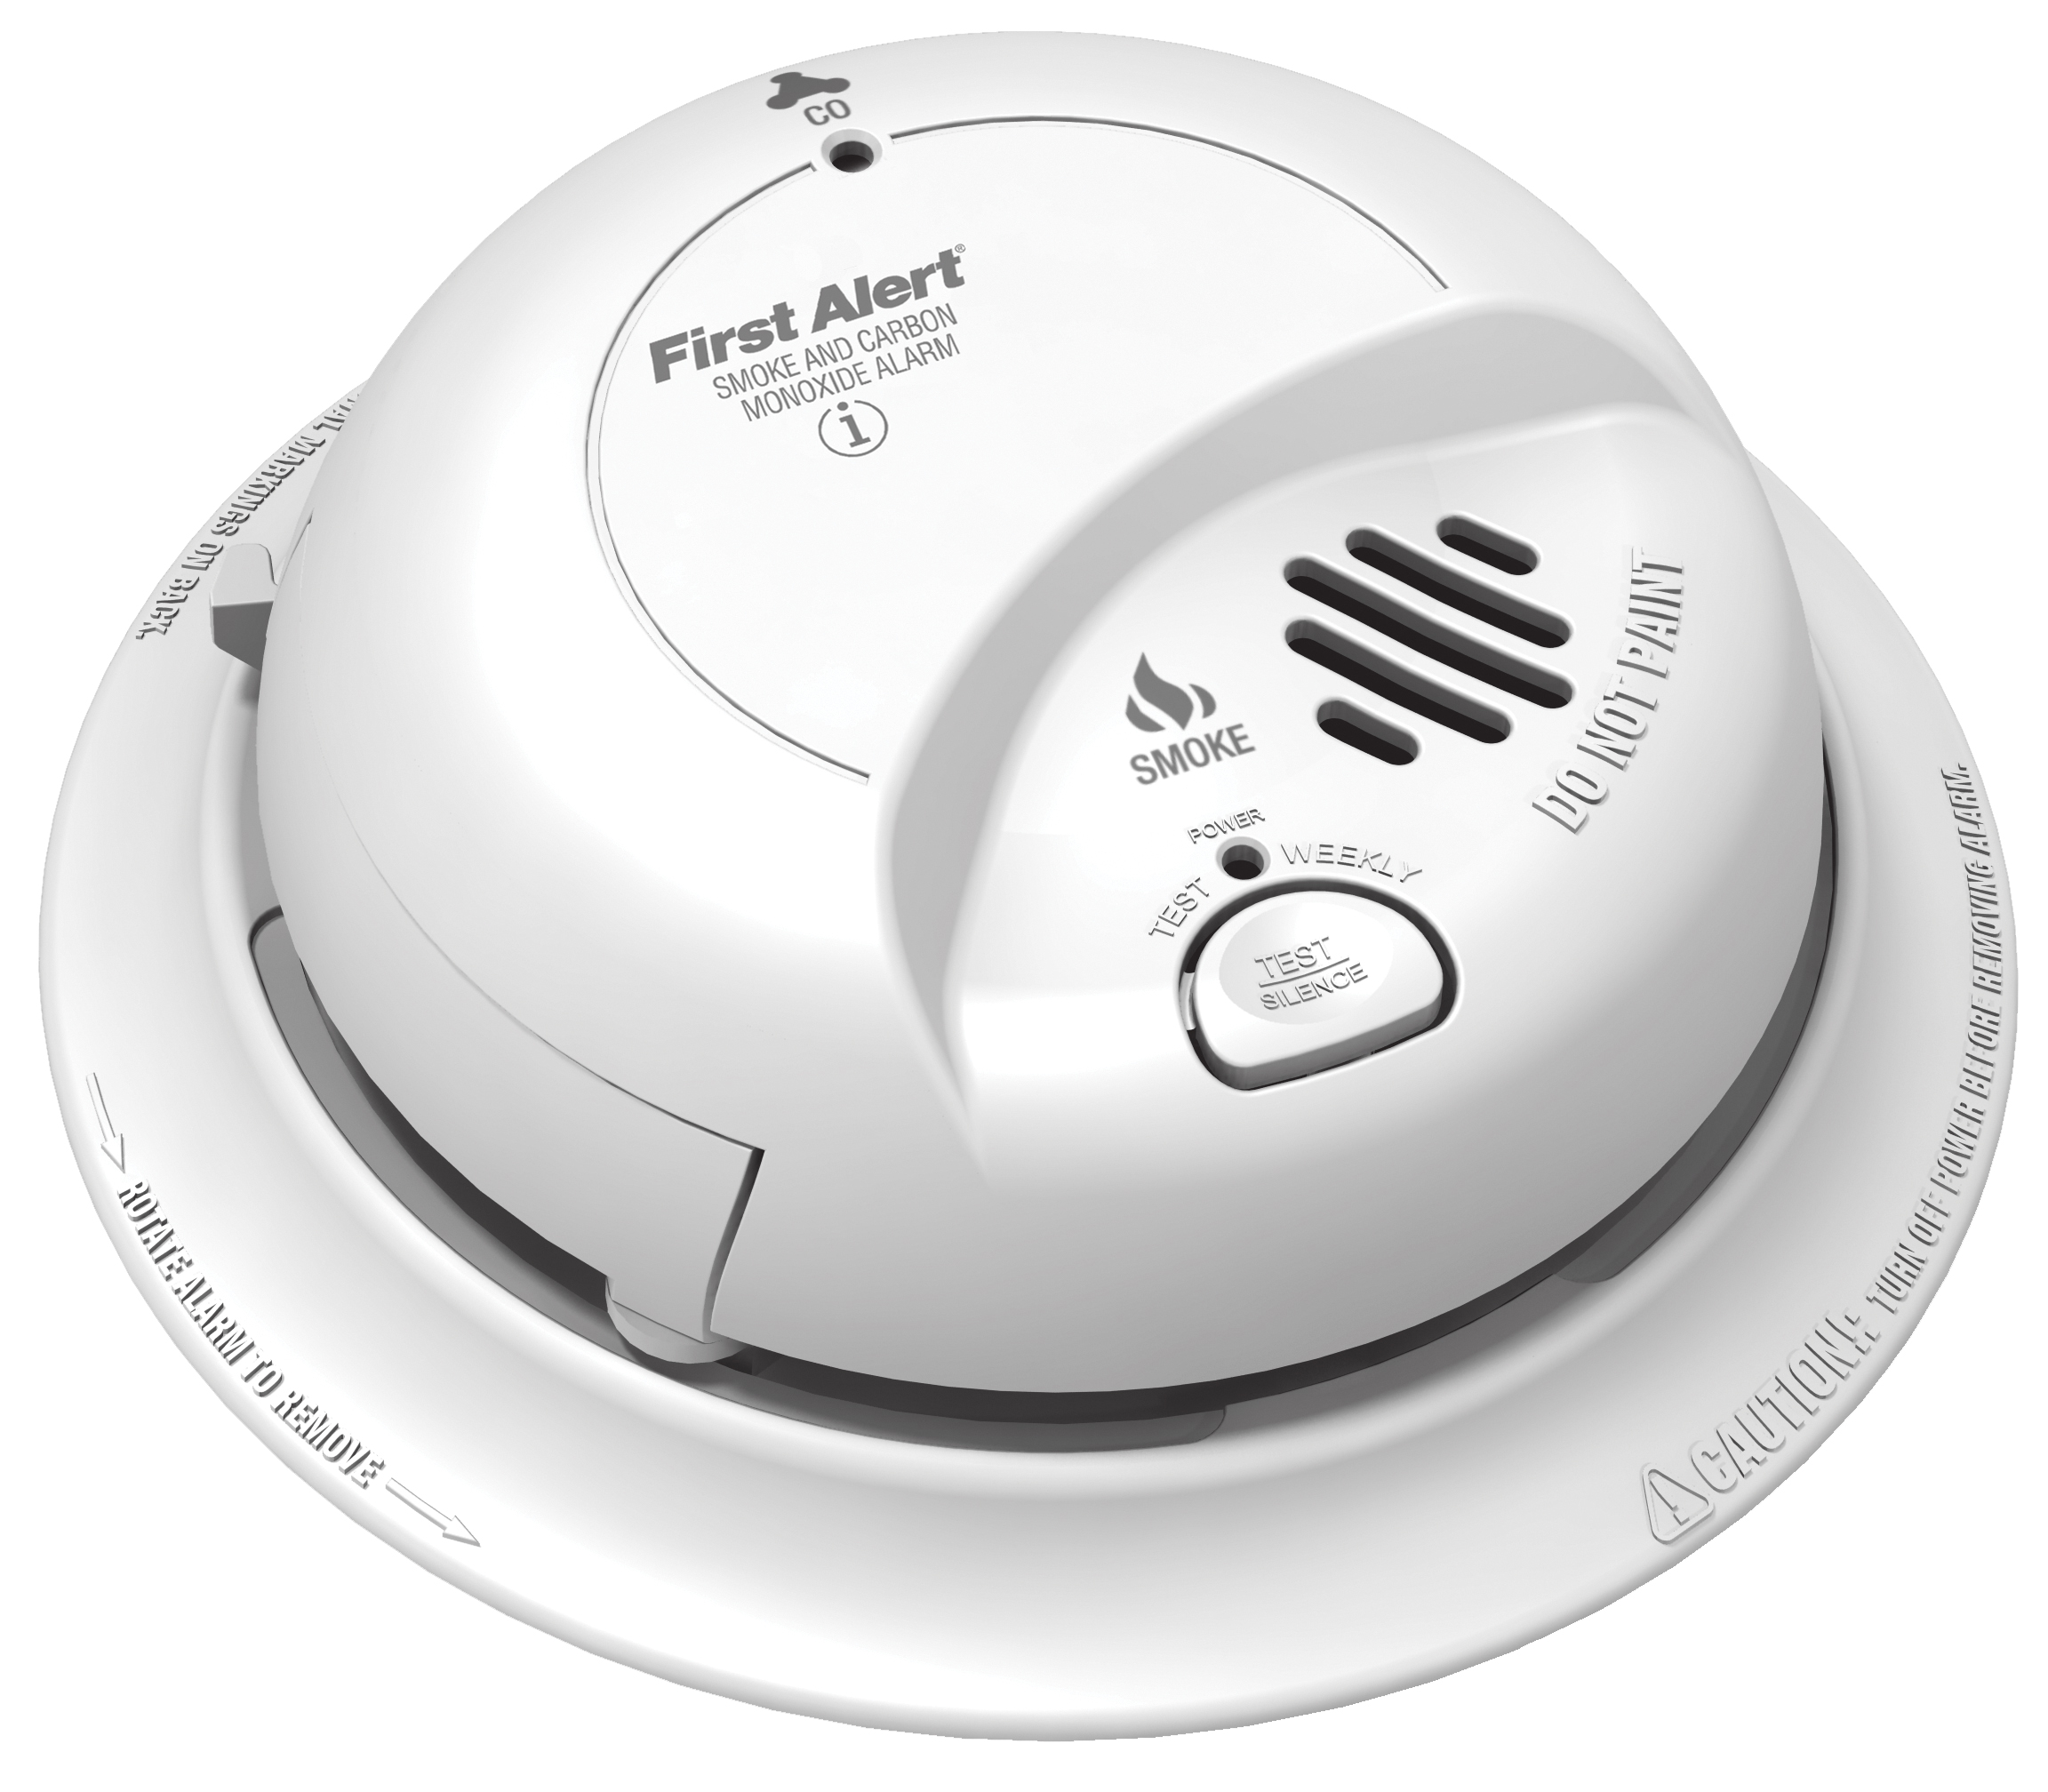 BRKSCO2B COMBINATION SMOKE / CARBON MONOXIDE ALARMS - BATTERY POWERED SILENCE, 9V ALKALINE BATTERY BRK